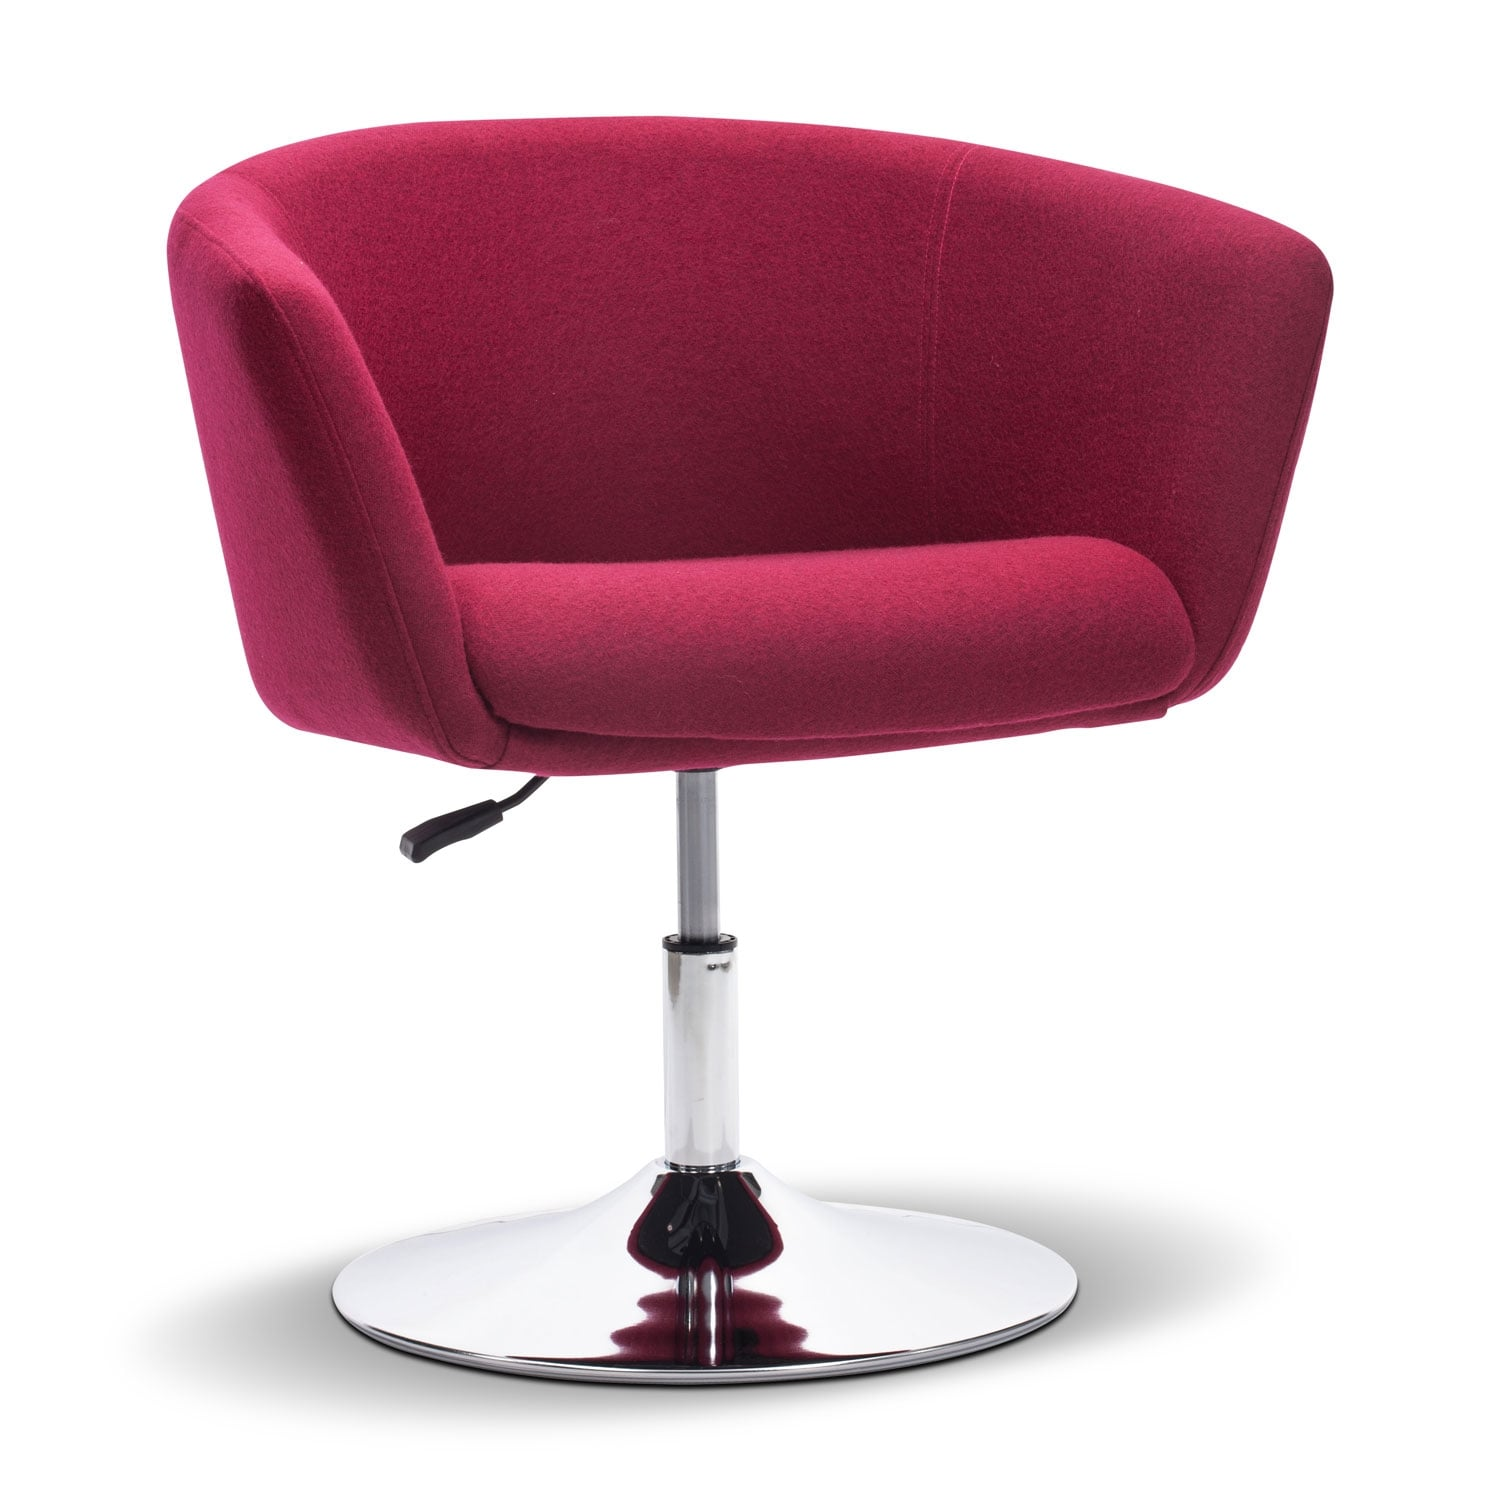 Living Room Furniture   Marseille Swivel Chair   Red